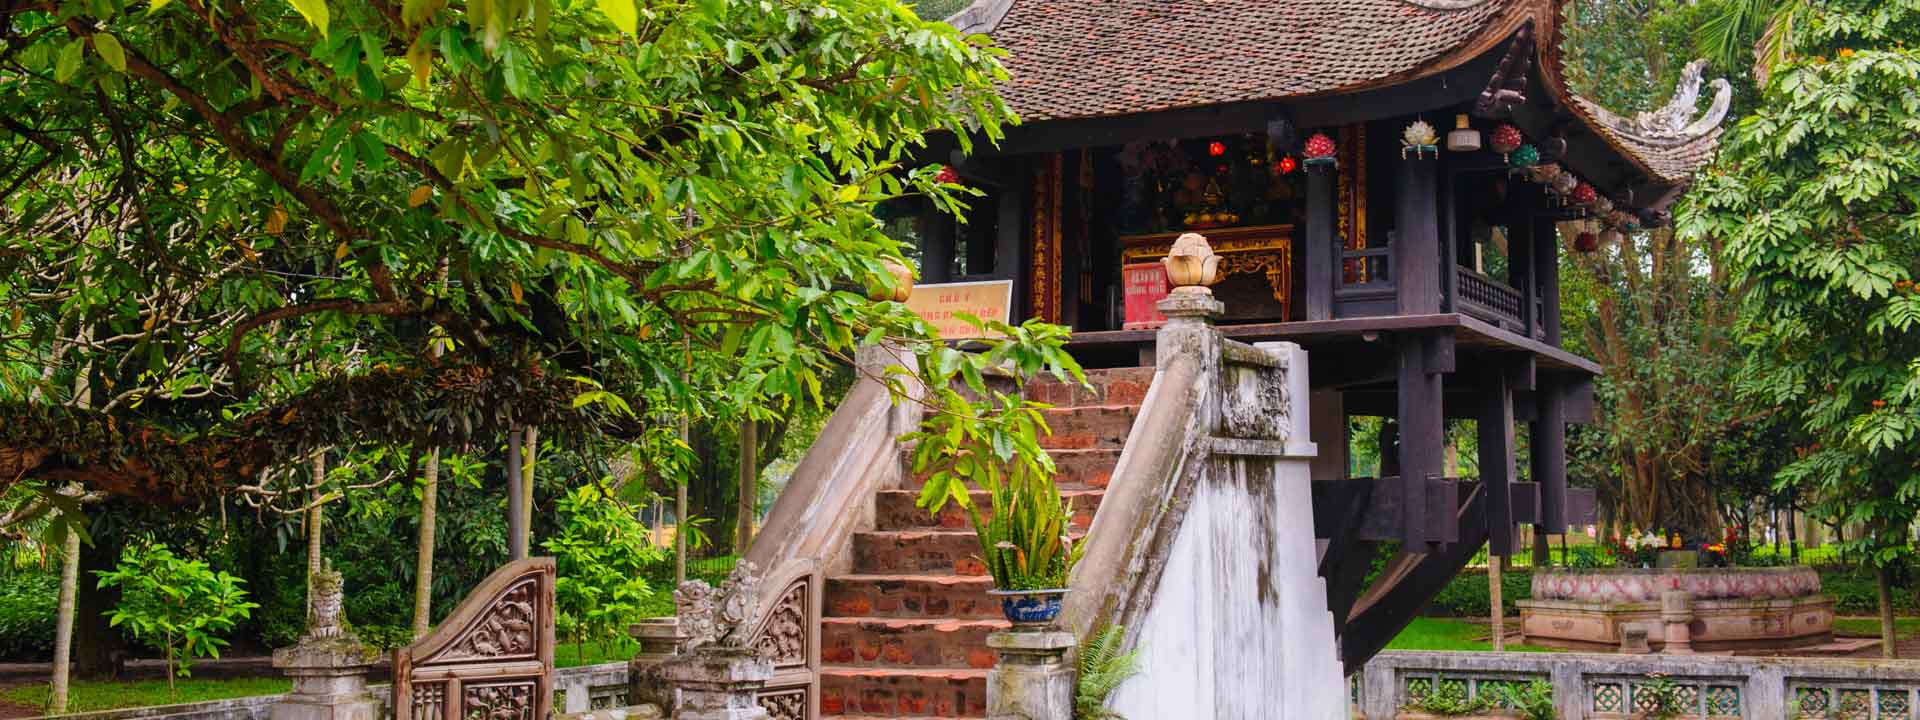 Northern Vietnam Luxury Adventure Tour 8 days